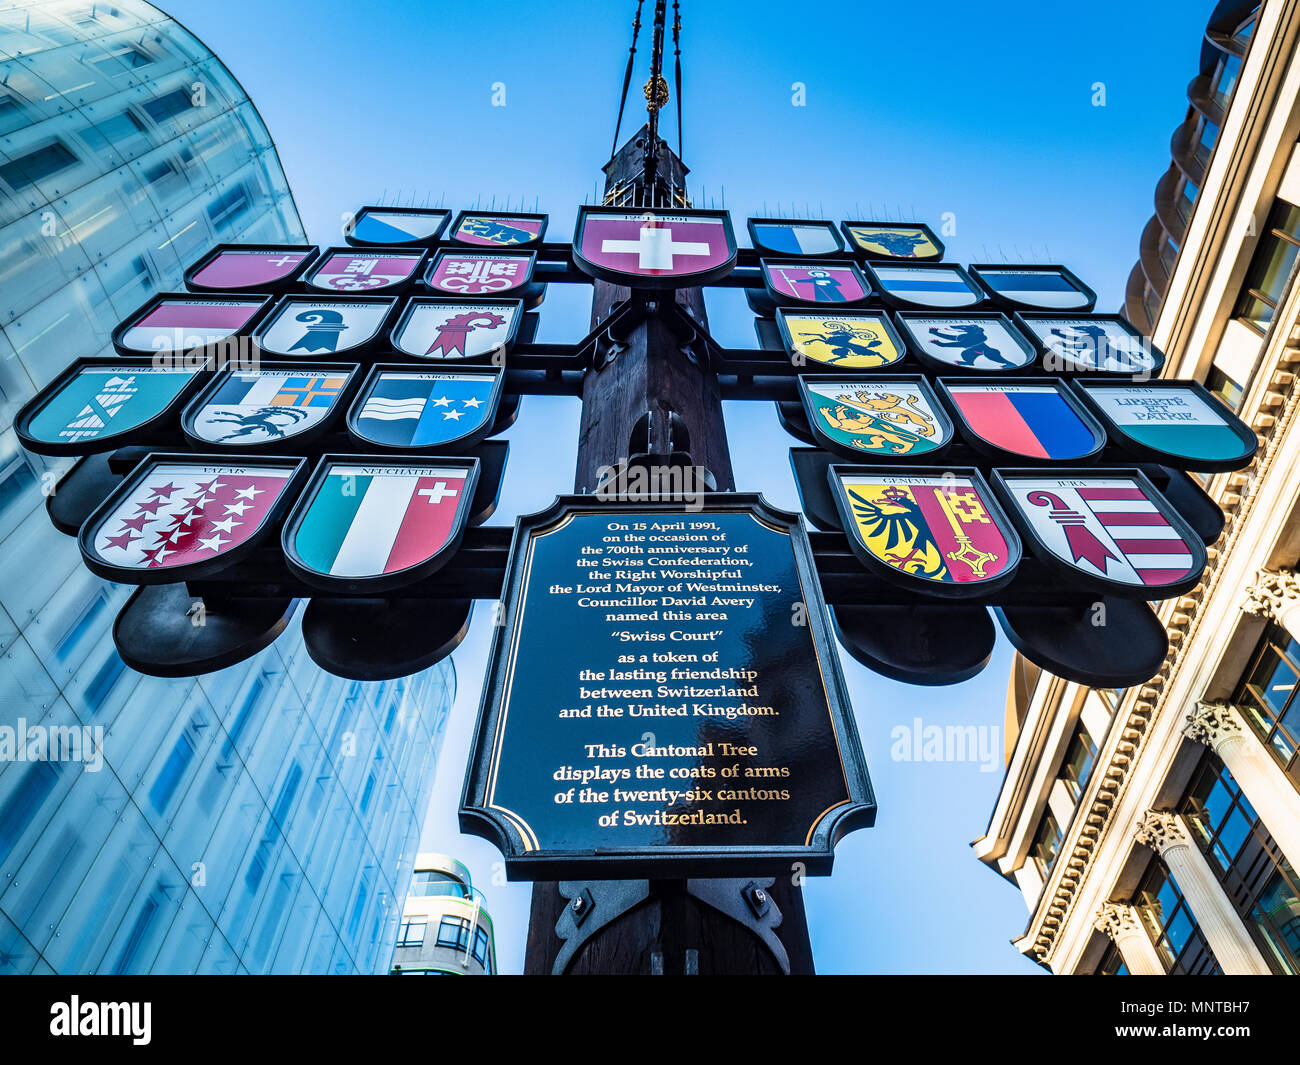 Swiss Canton Tree in London's West End - The Swiss Cantonal Tree in Swiss Court near Leicester Square, erected 1991 as a sign of UK Swiss friendship - Stock Image